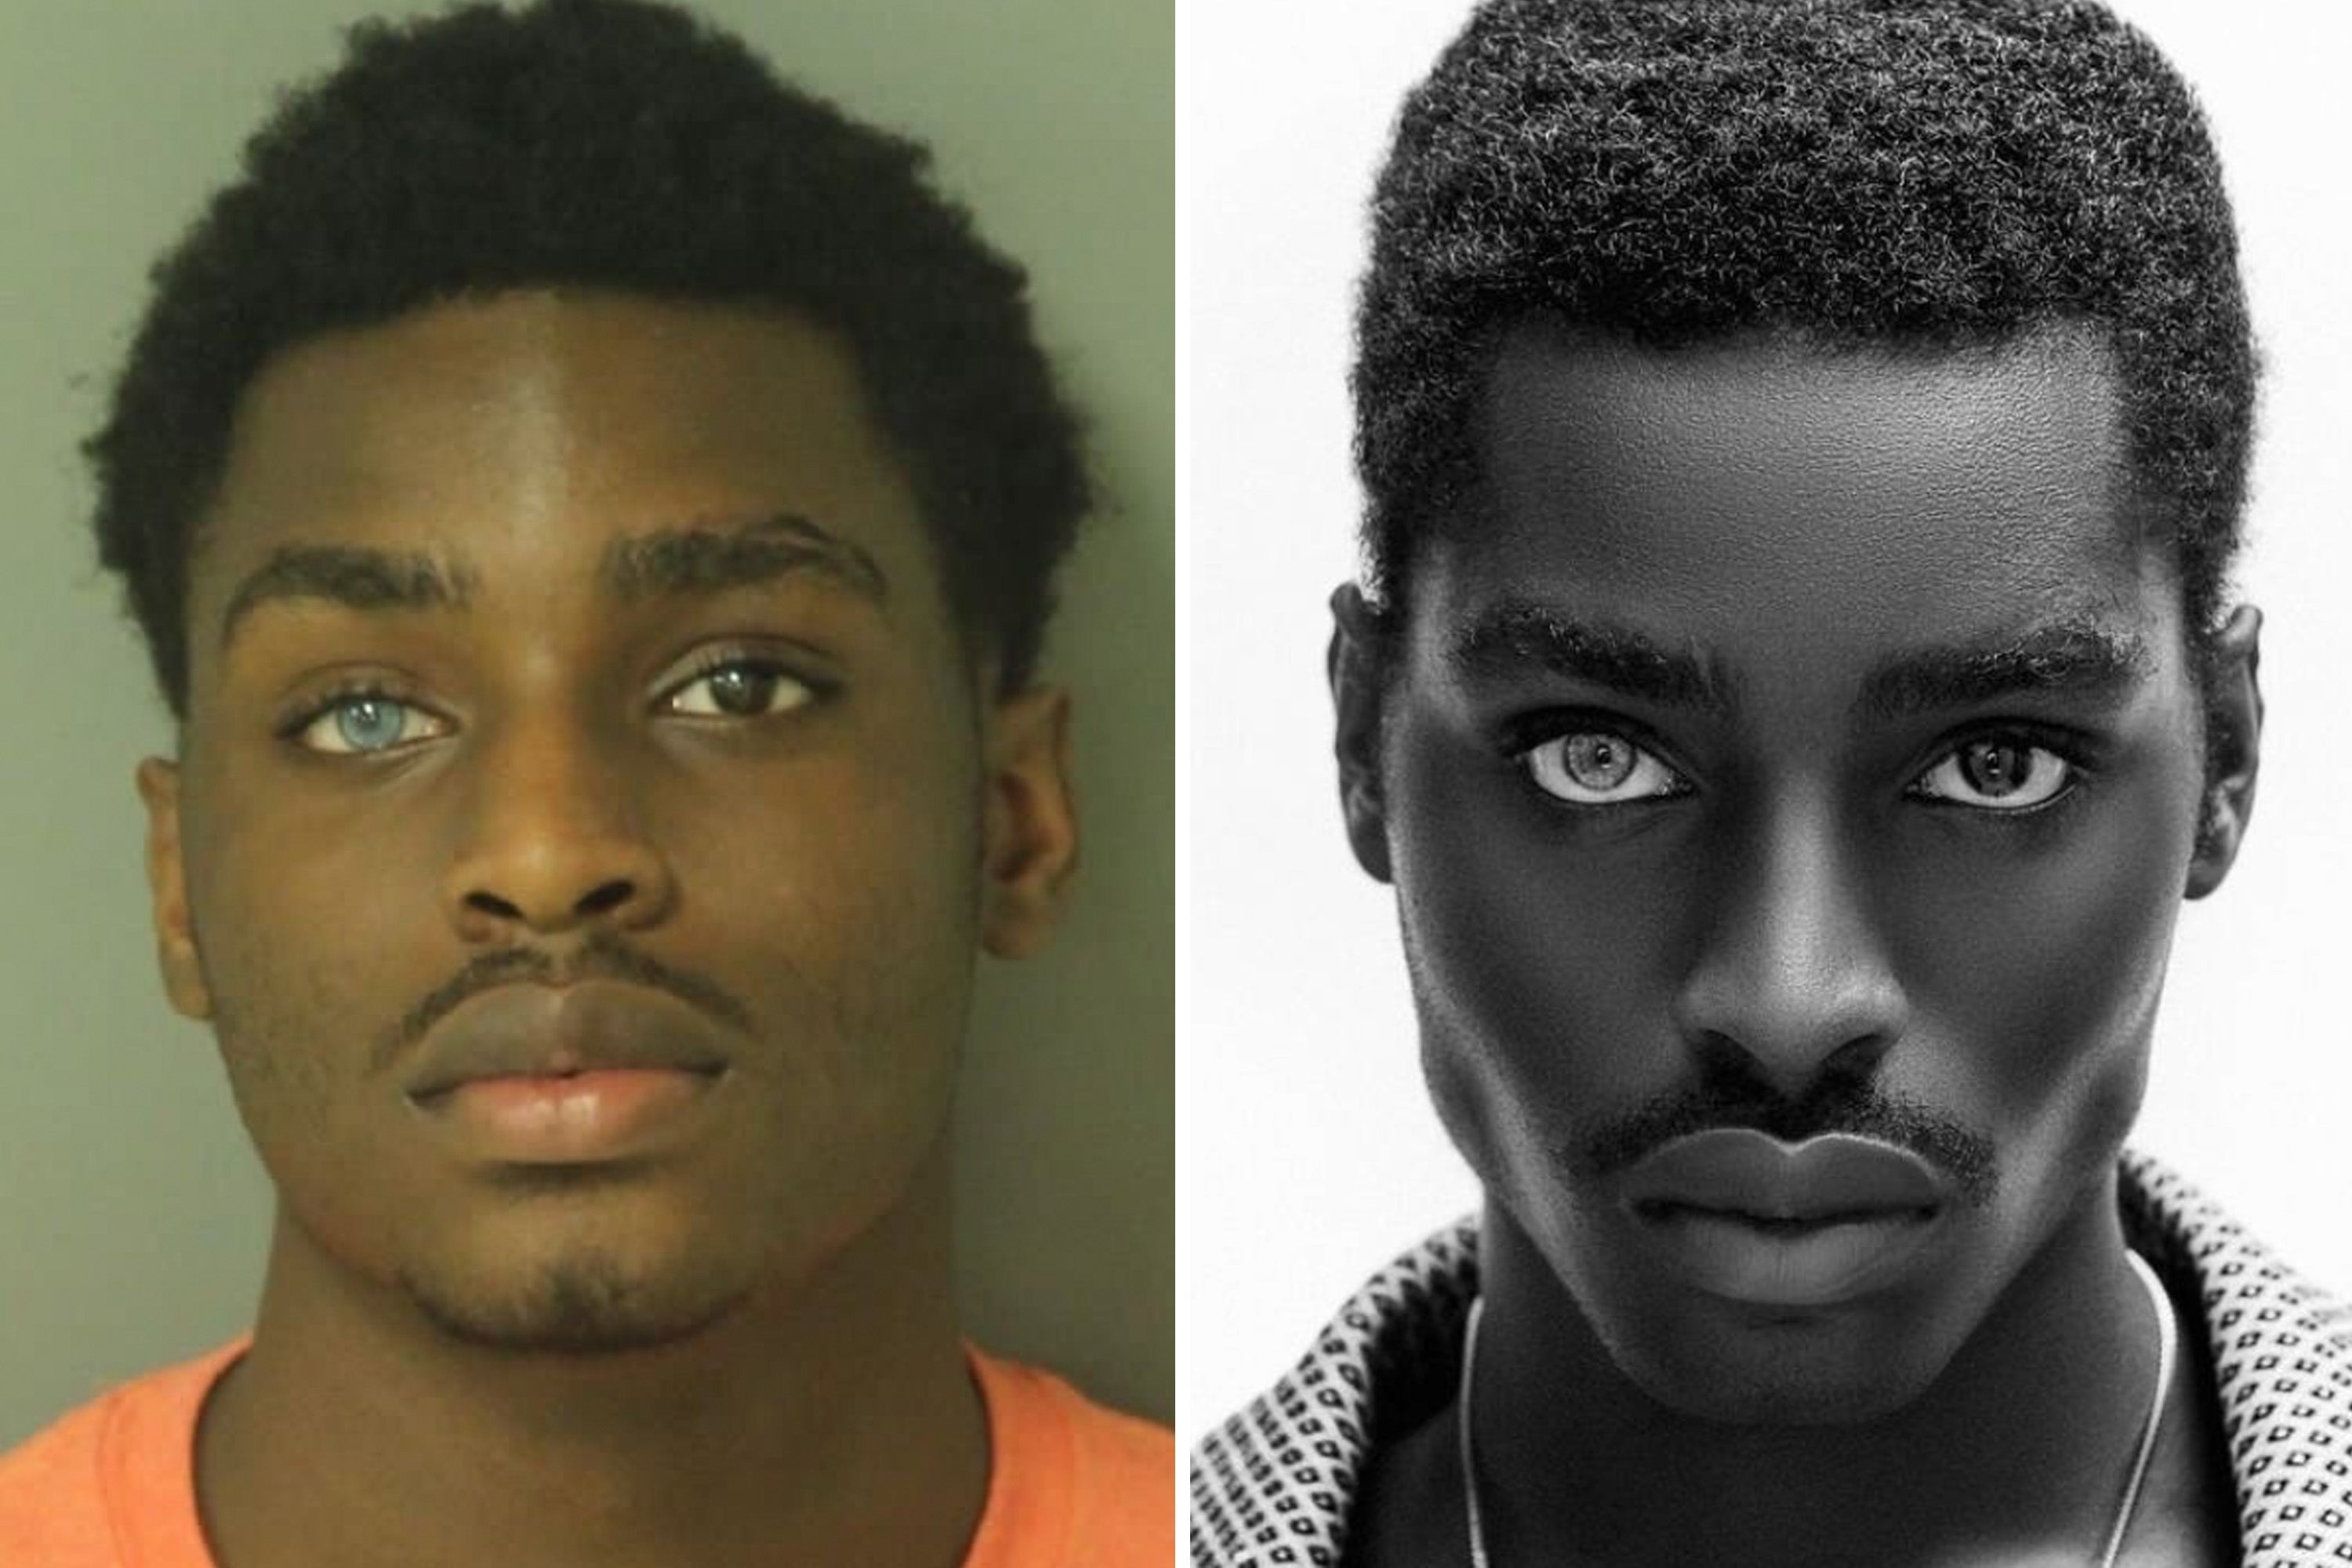 Remember Chocolate 'Prison Bae'? His Mugshot Landed Him A Modeling Contract Too